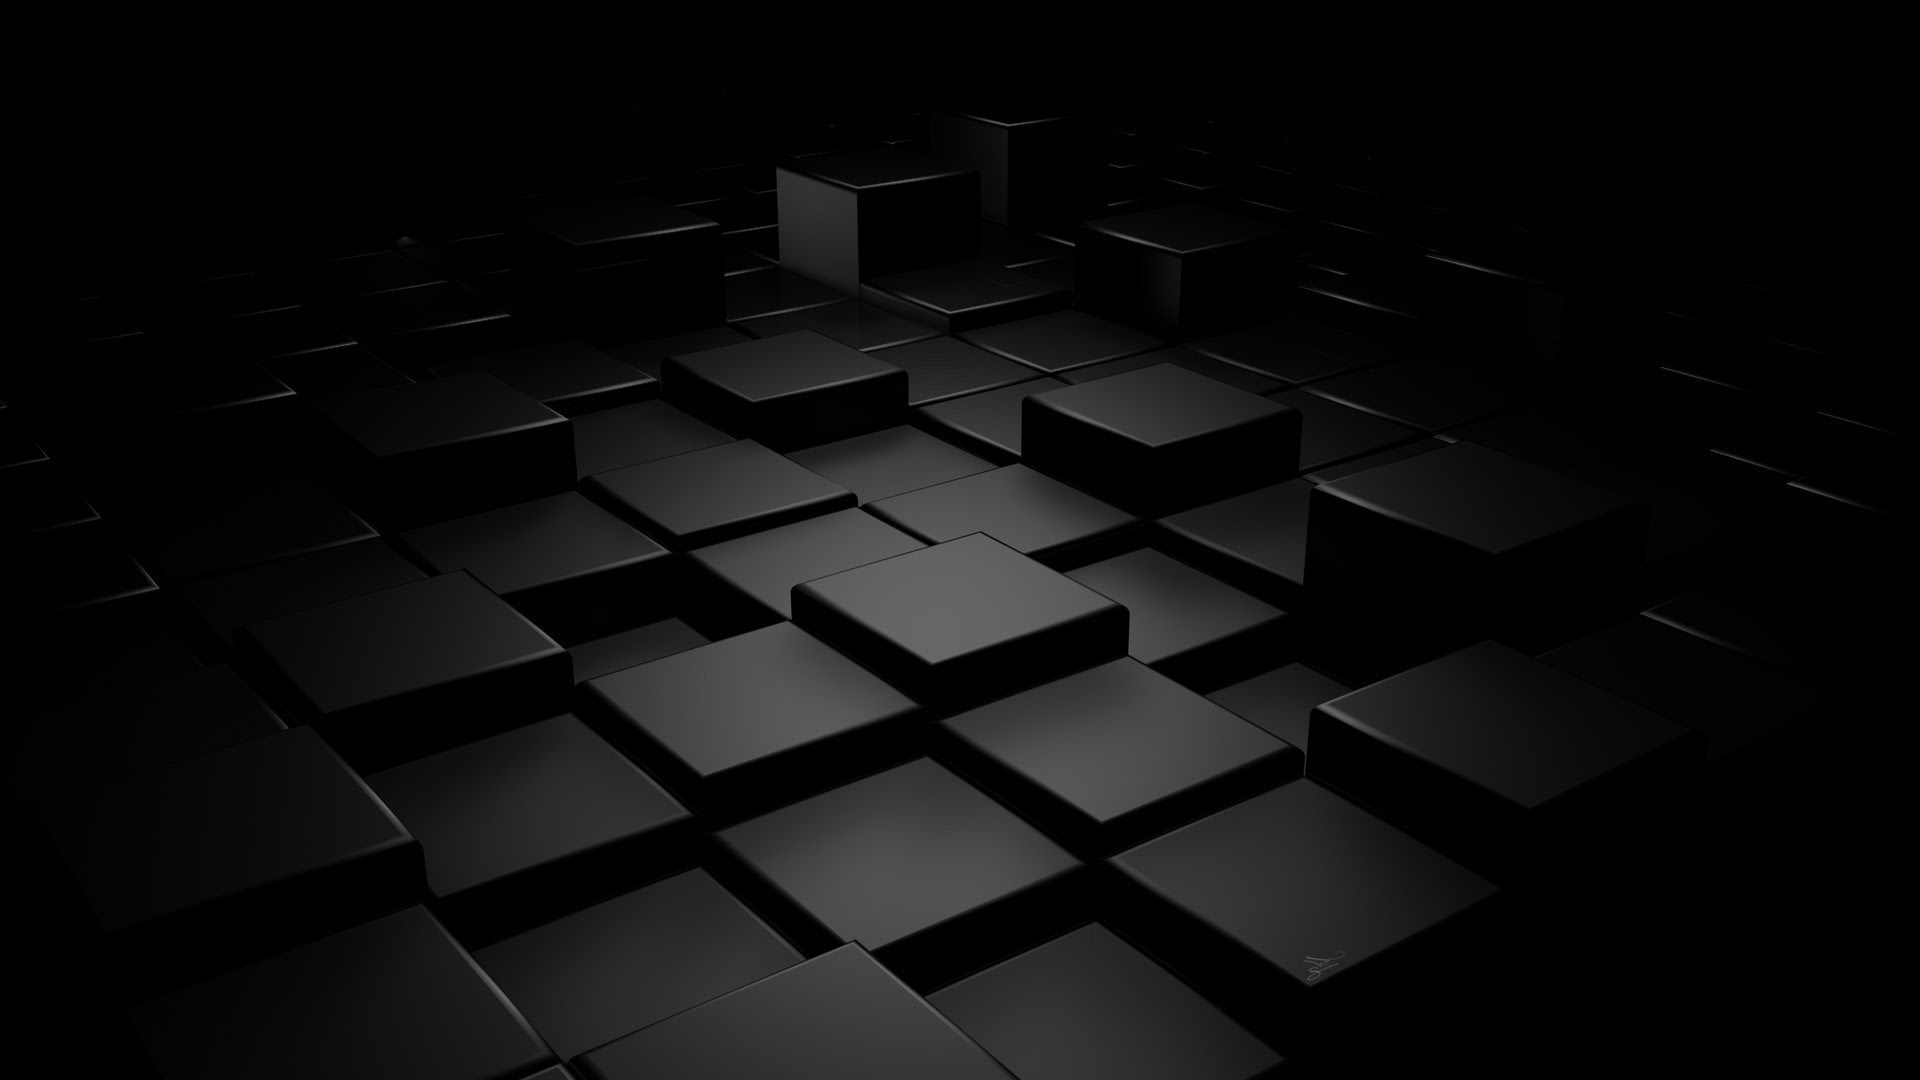 50 Black Wallpaper In FHD For Free Download For Android, Desktop and Laptops